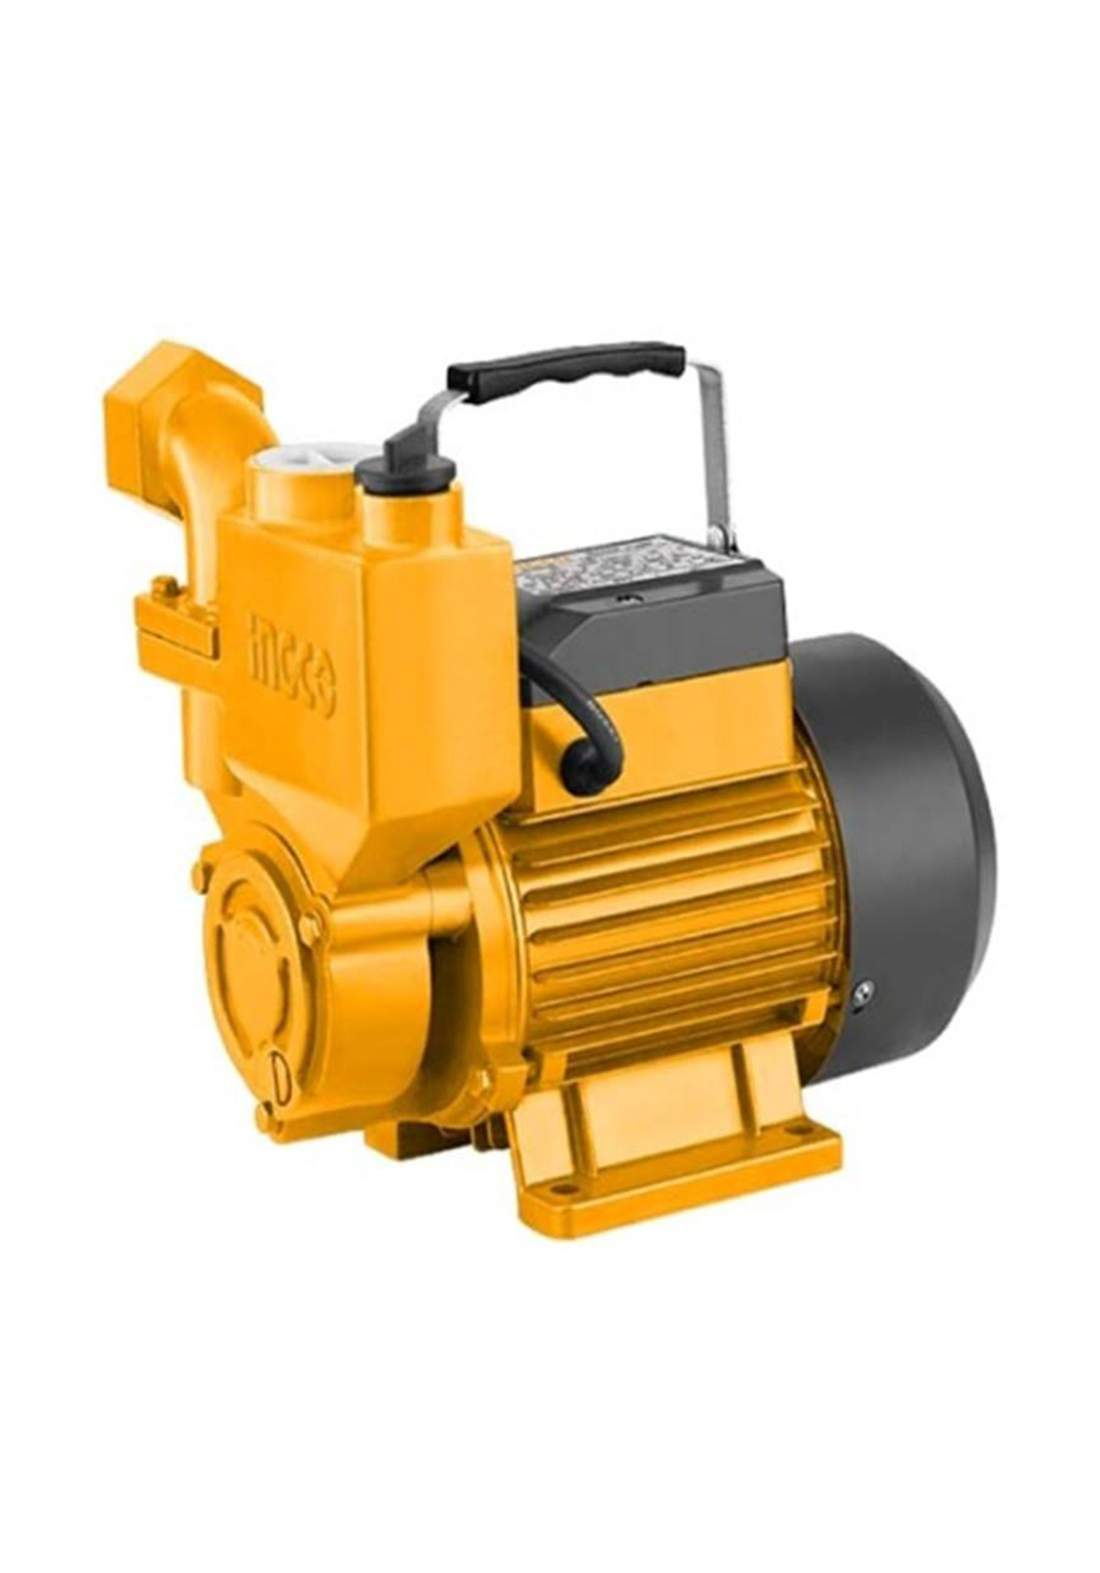 Ingco VPS7502 copper wire motor water pump  ماطور حرامي 1حصان